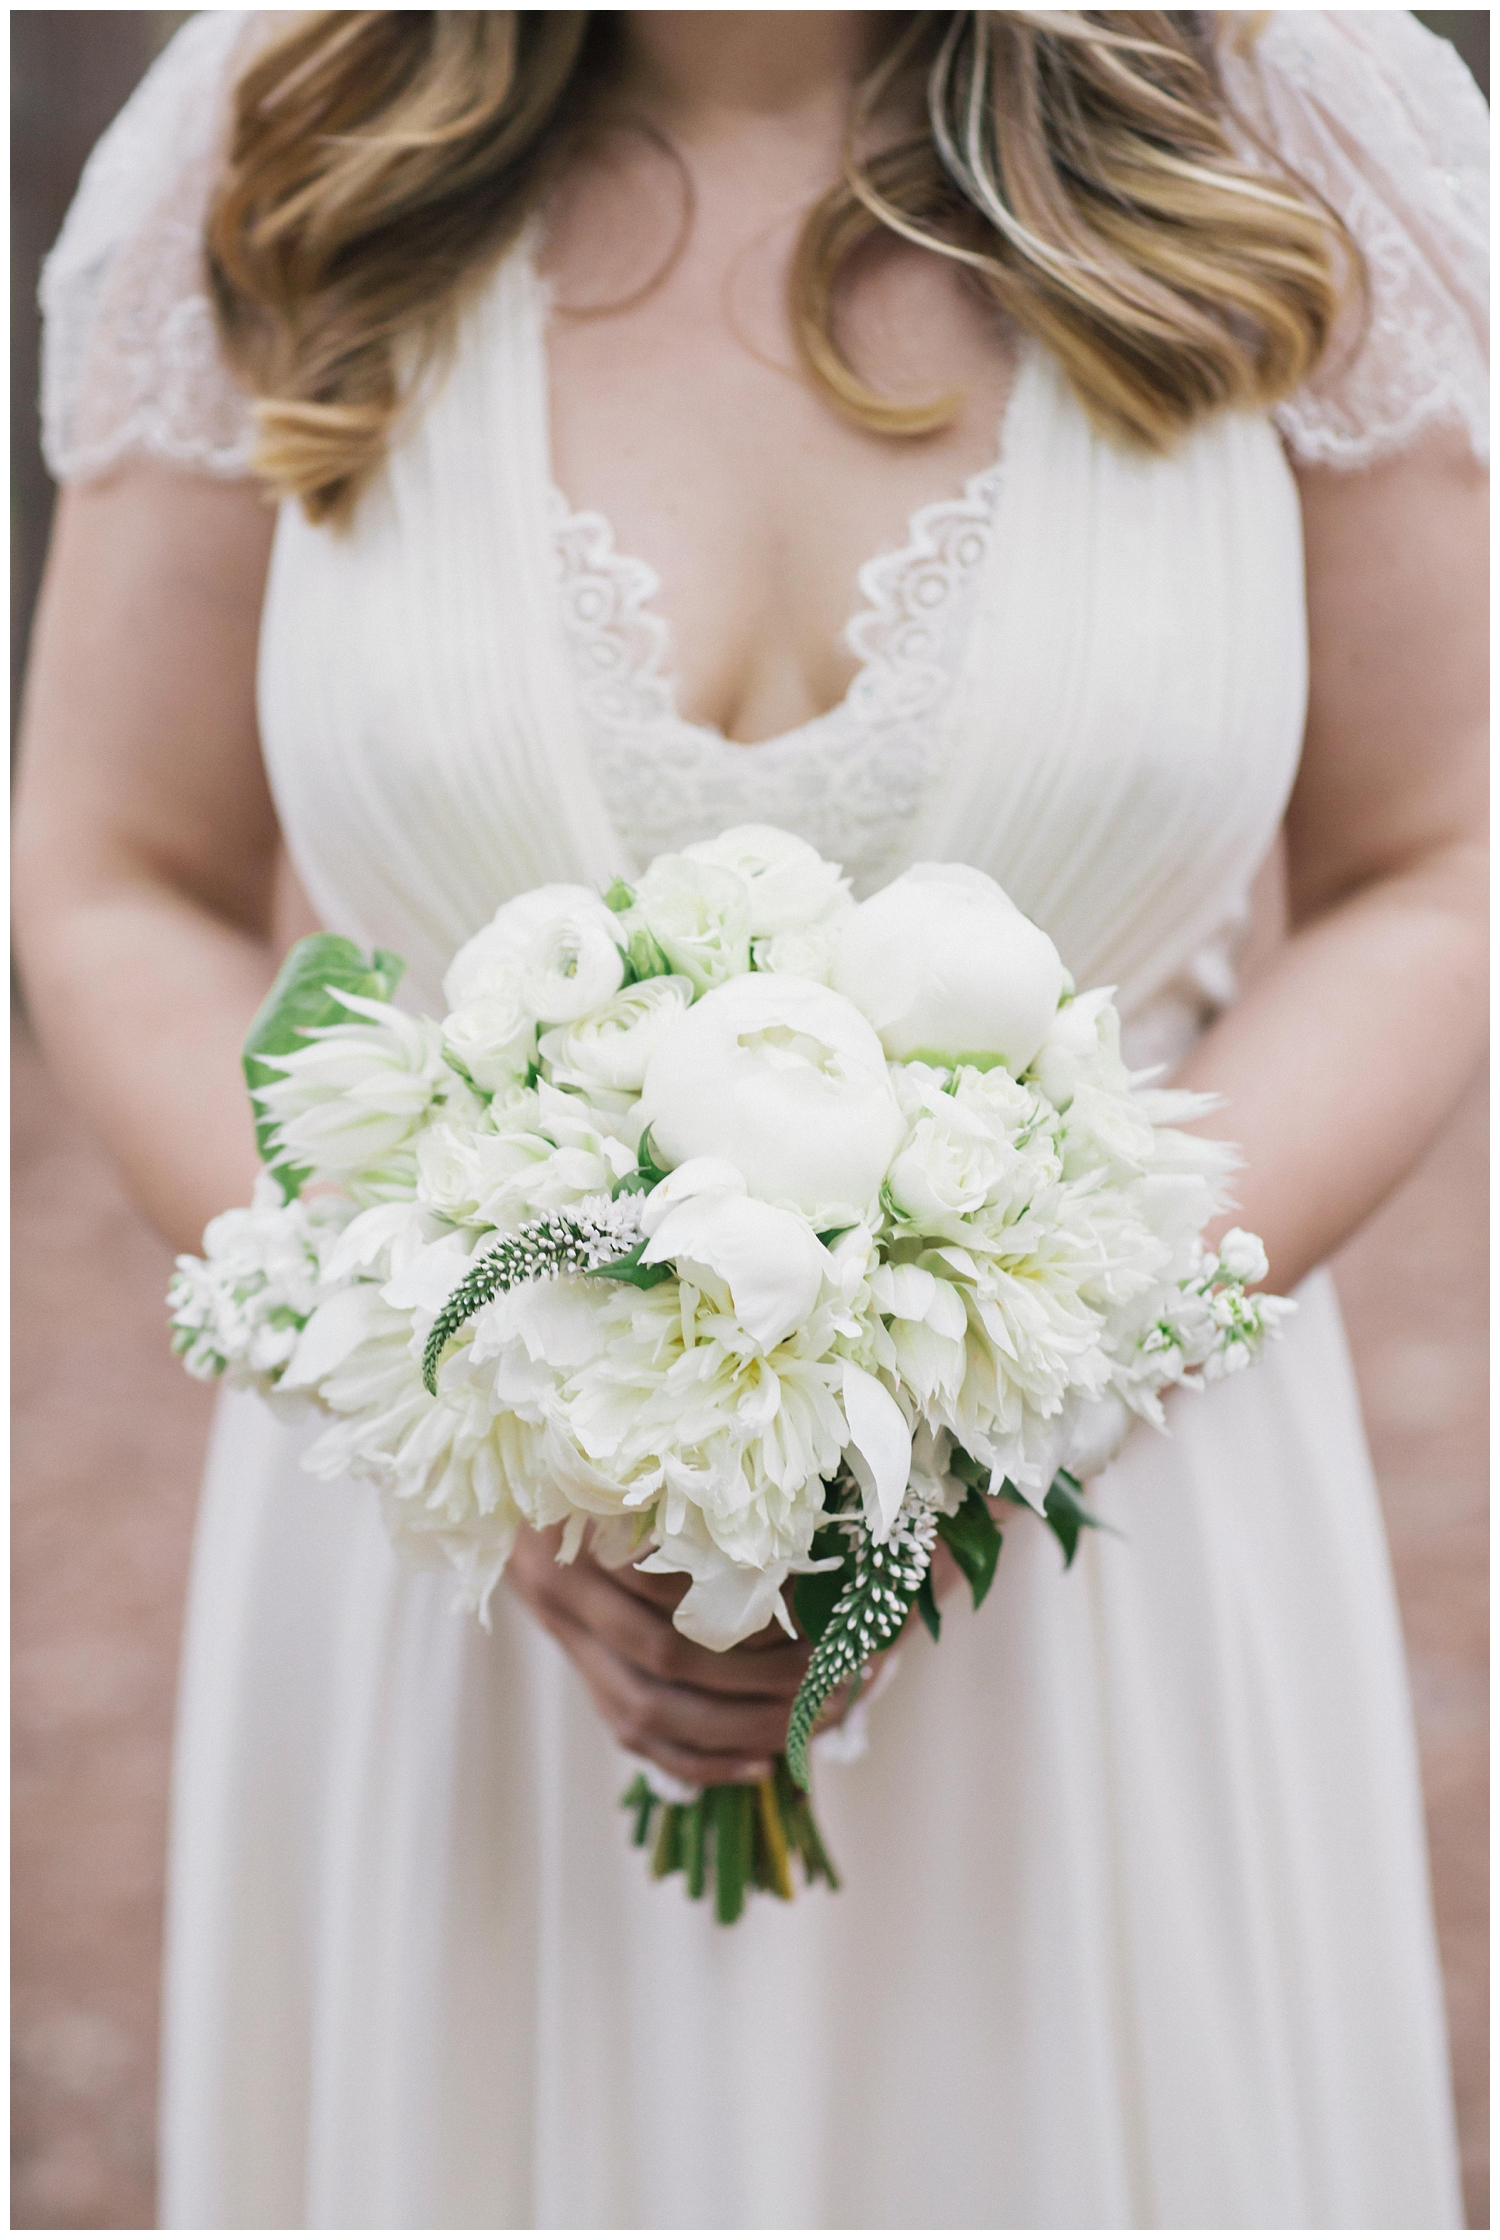 The Roxbury Barn Wedding Venue | Bride holding white flowers | Barn Wedding